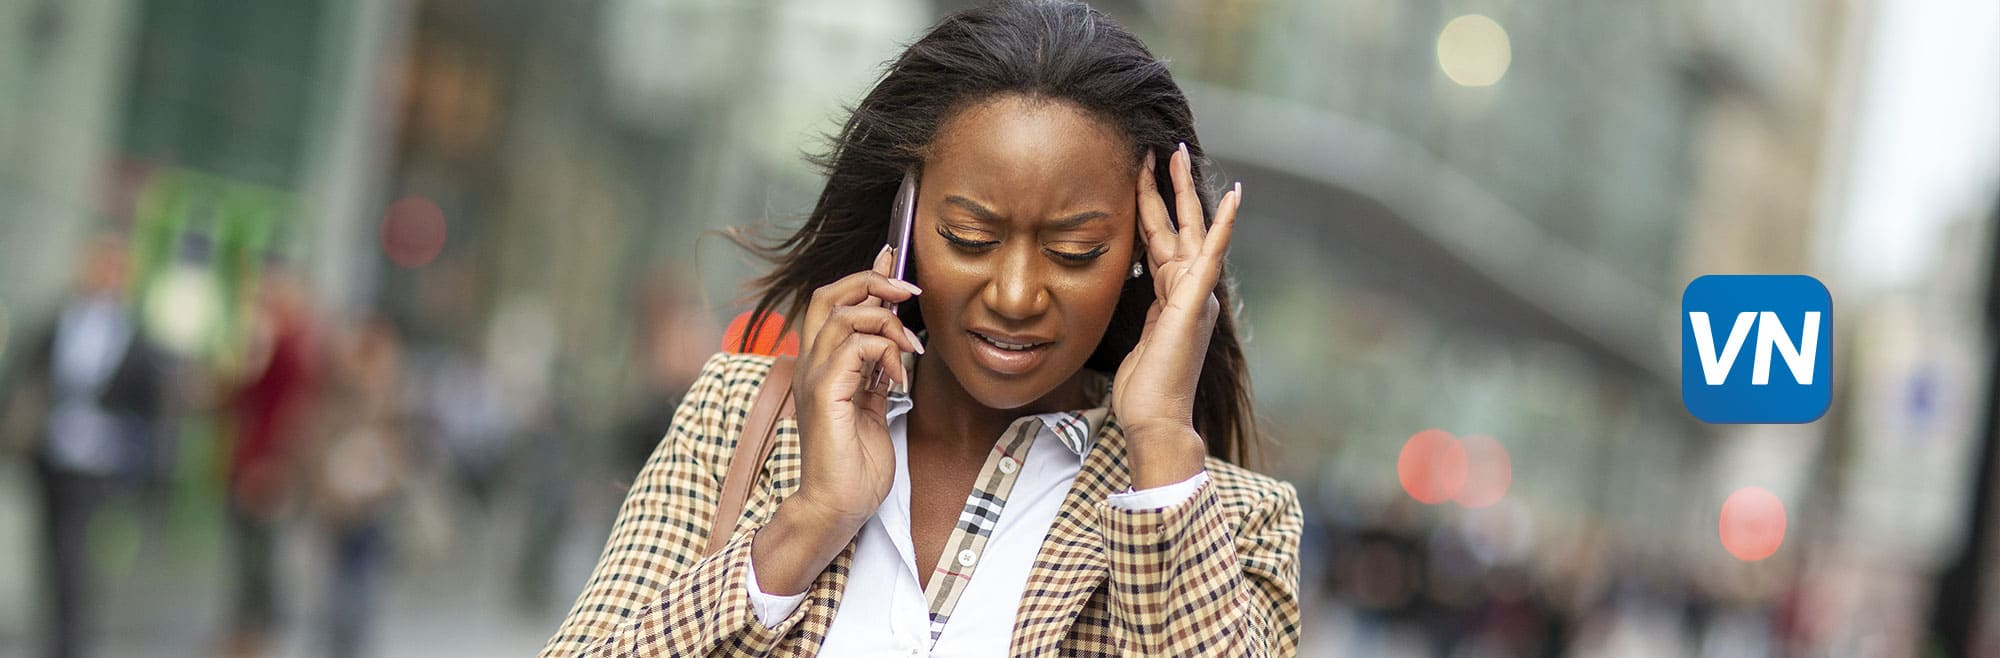 Woman on the phone trying to hear the other person